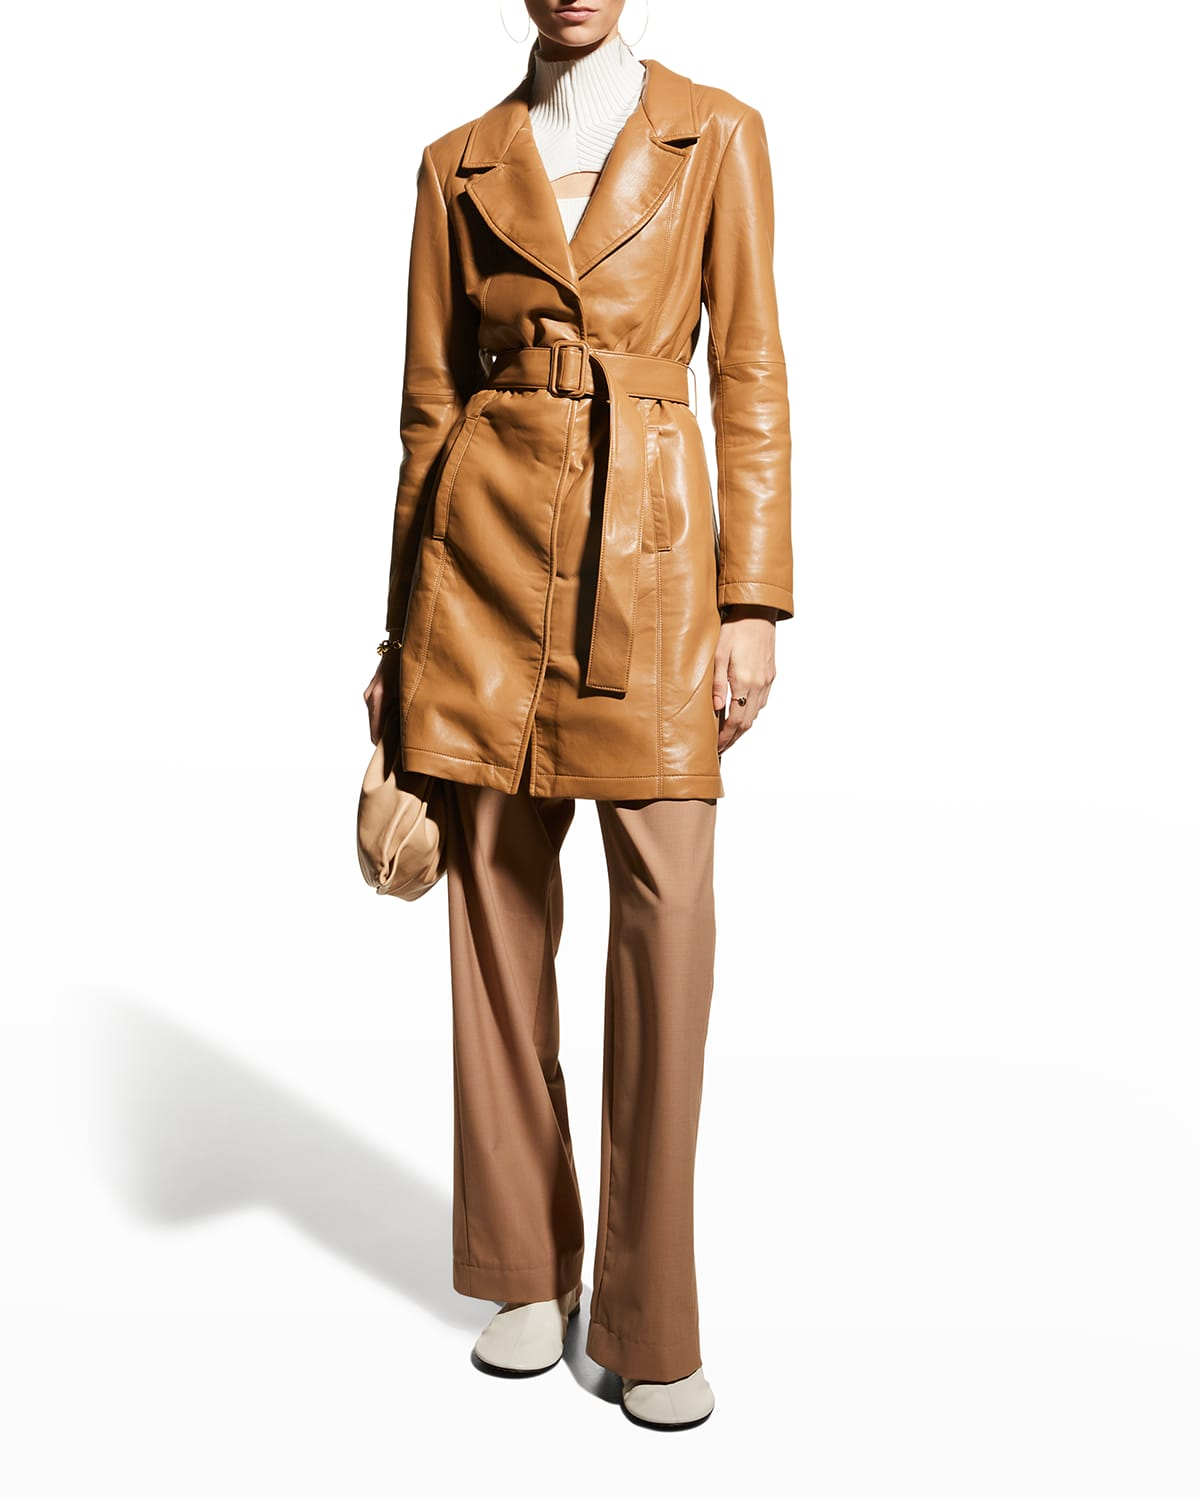 Crawford Recycled Leather Trench Coat